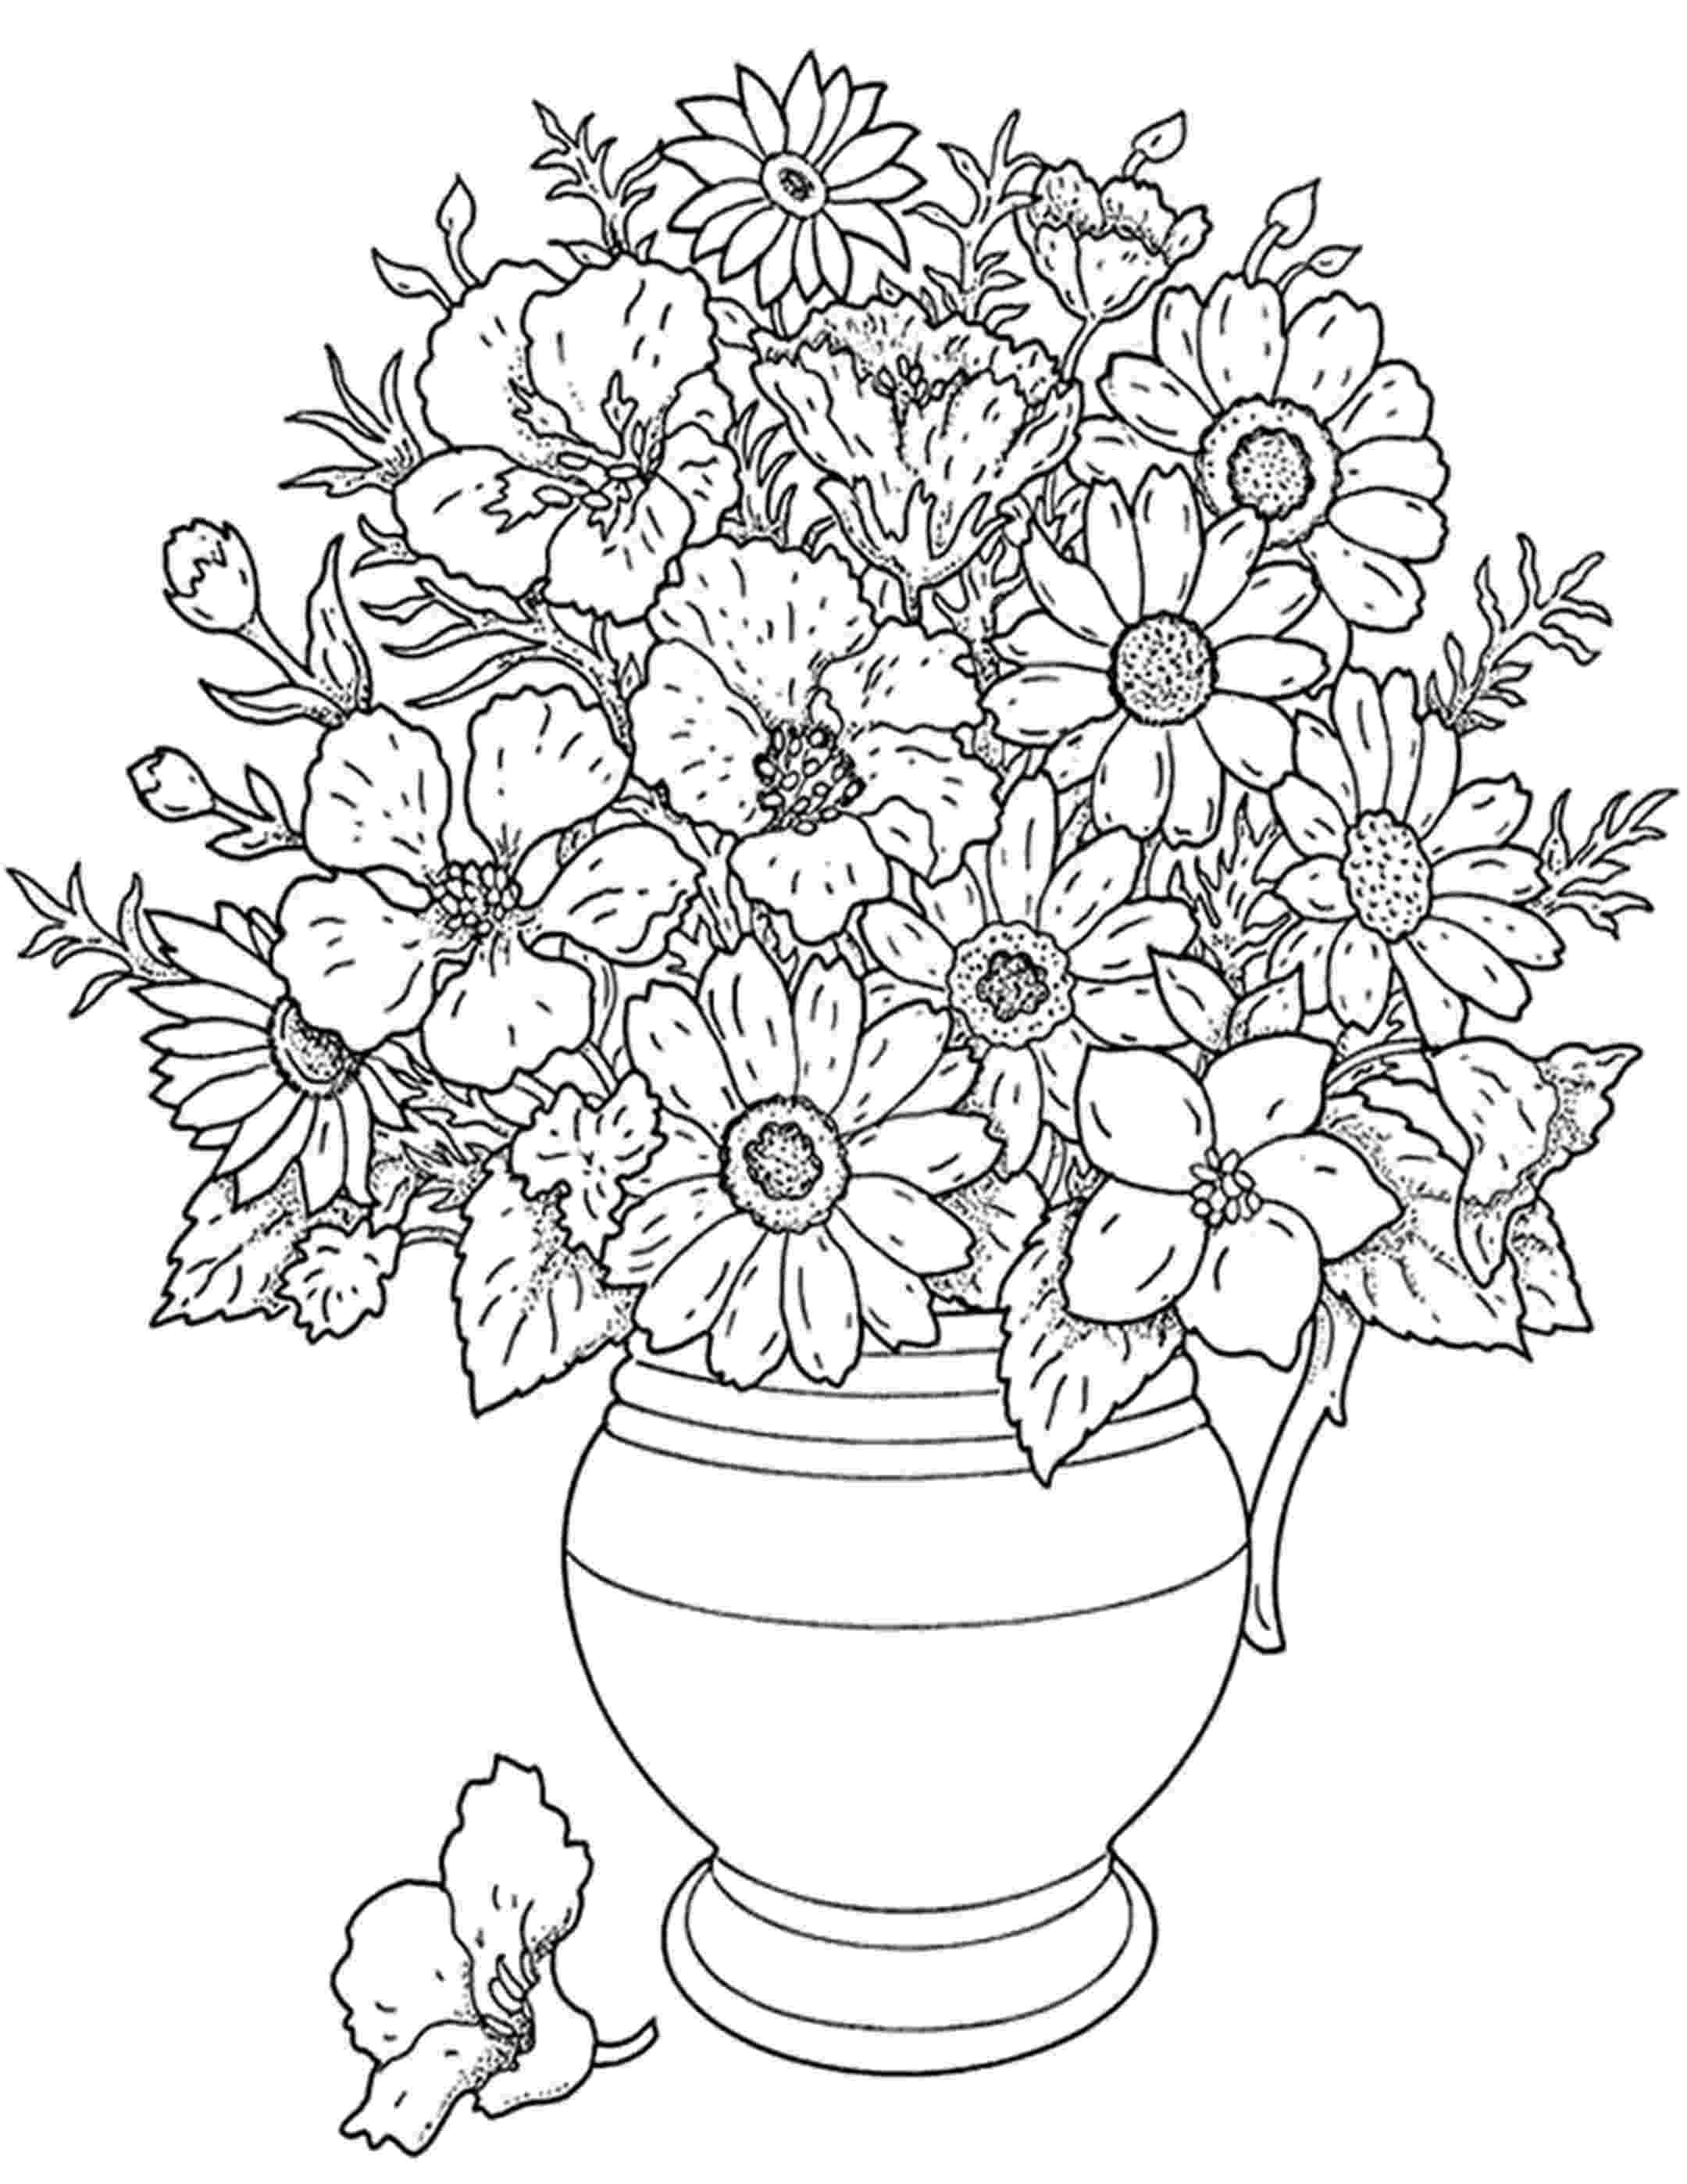 color page flower free printable flower coloring pages for kids best color flower page 1 2